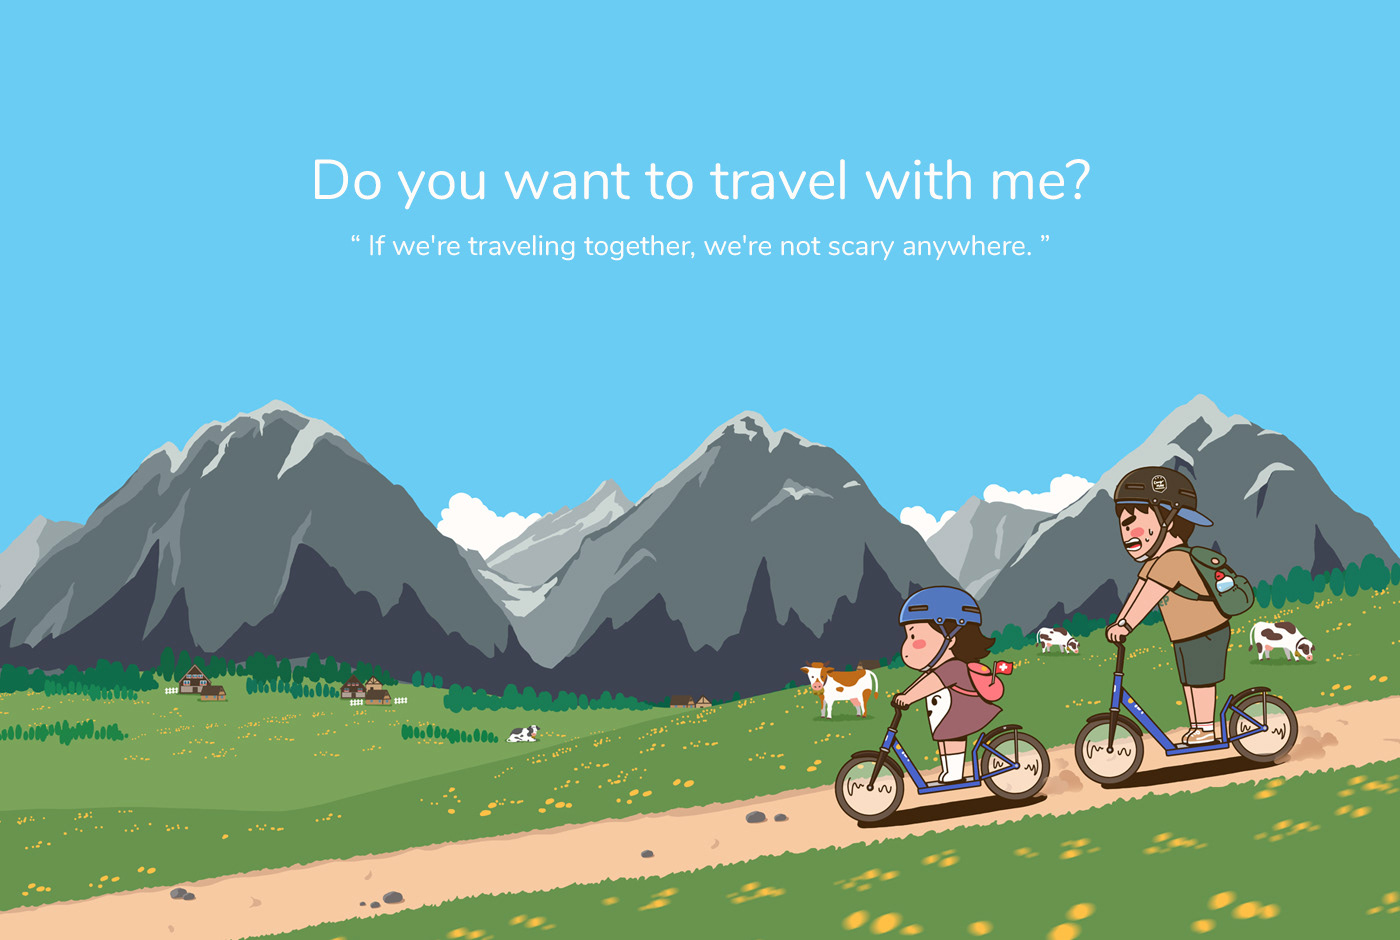 carrygrow ILLUSTRATION  productdesign Travel trip contetns Character graphicdesign package